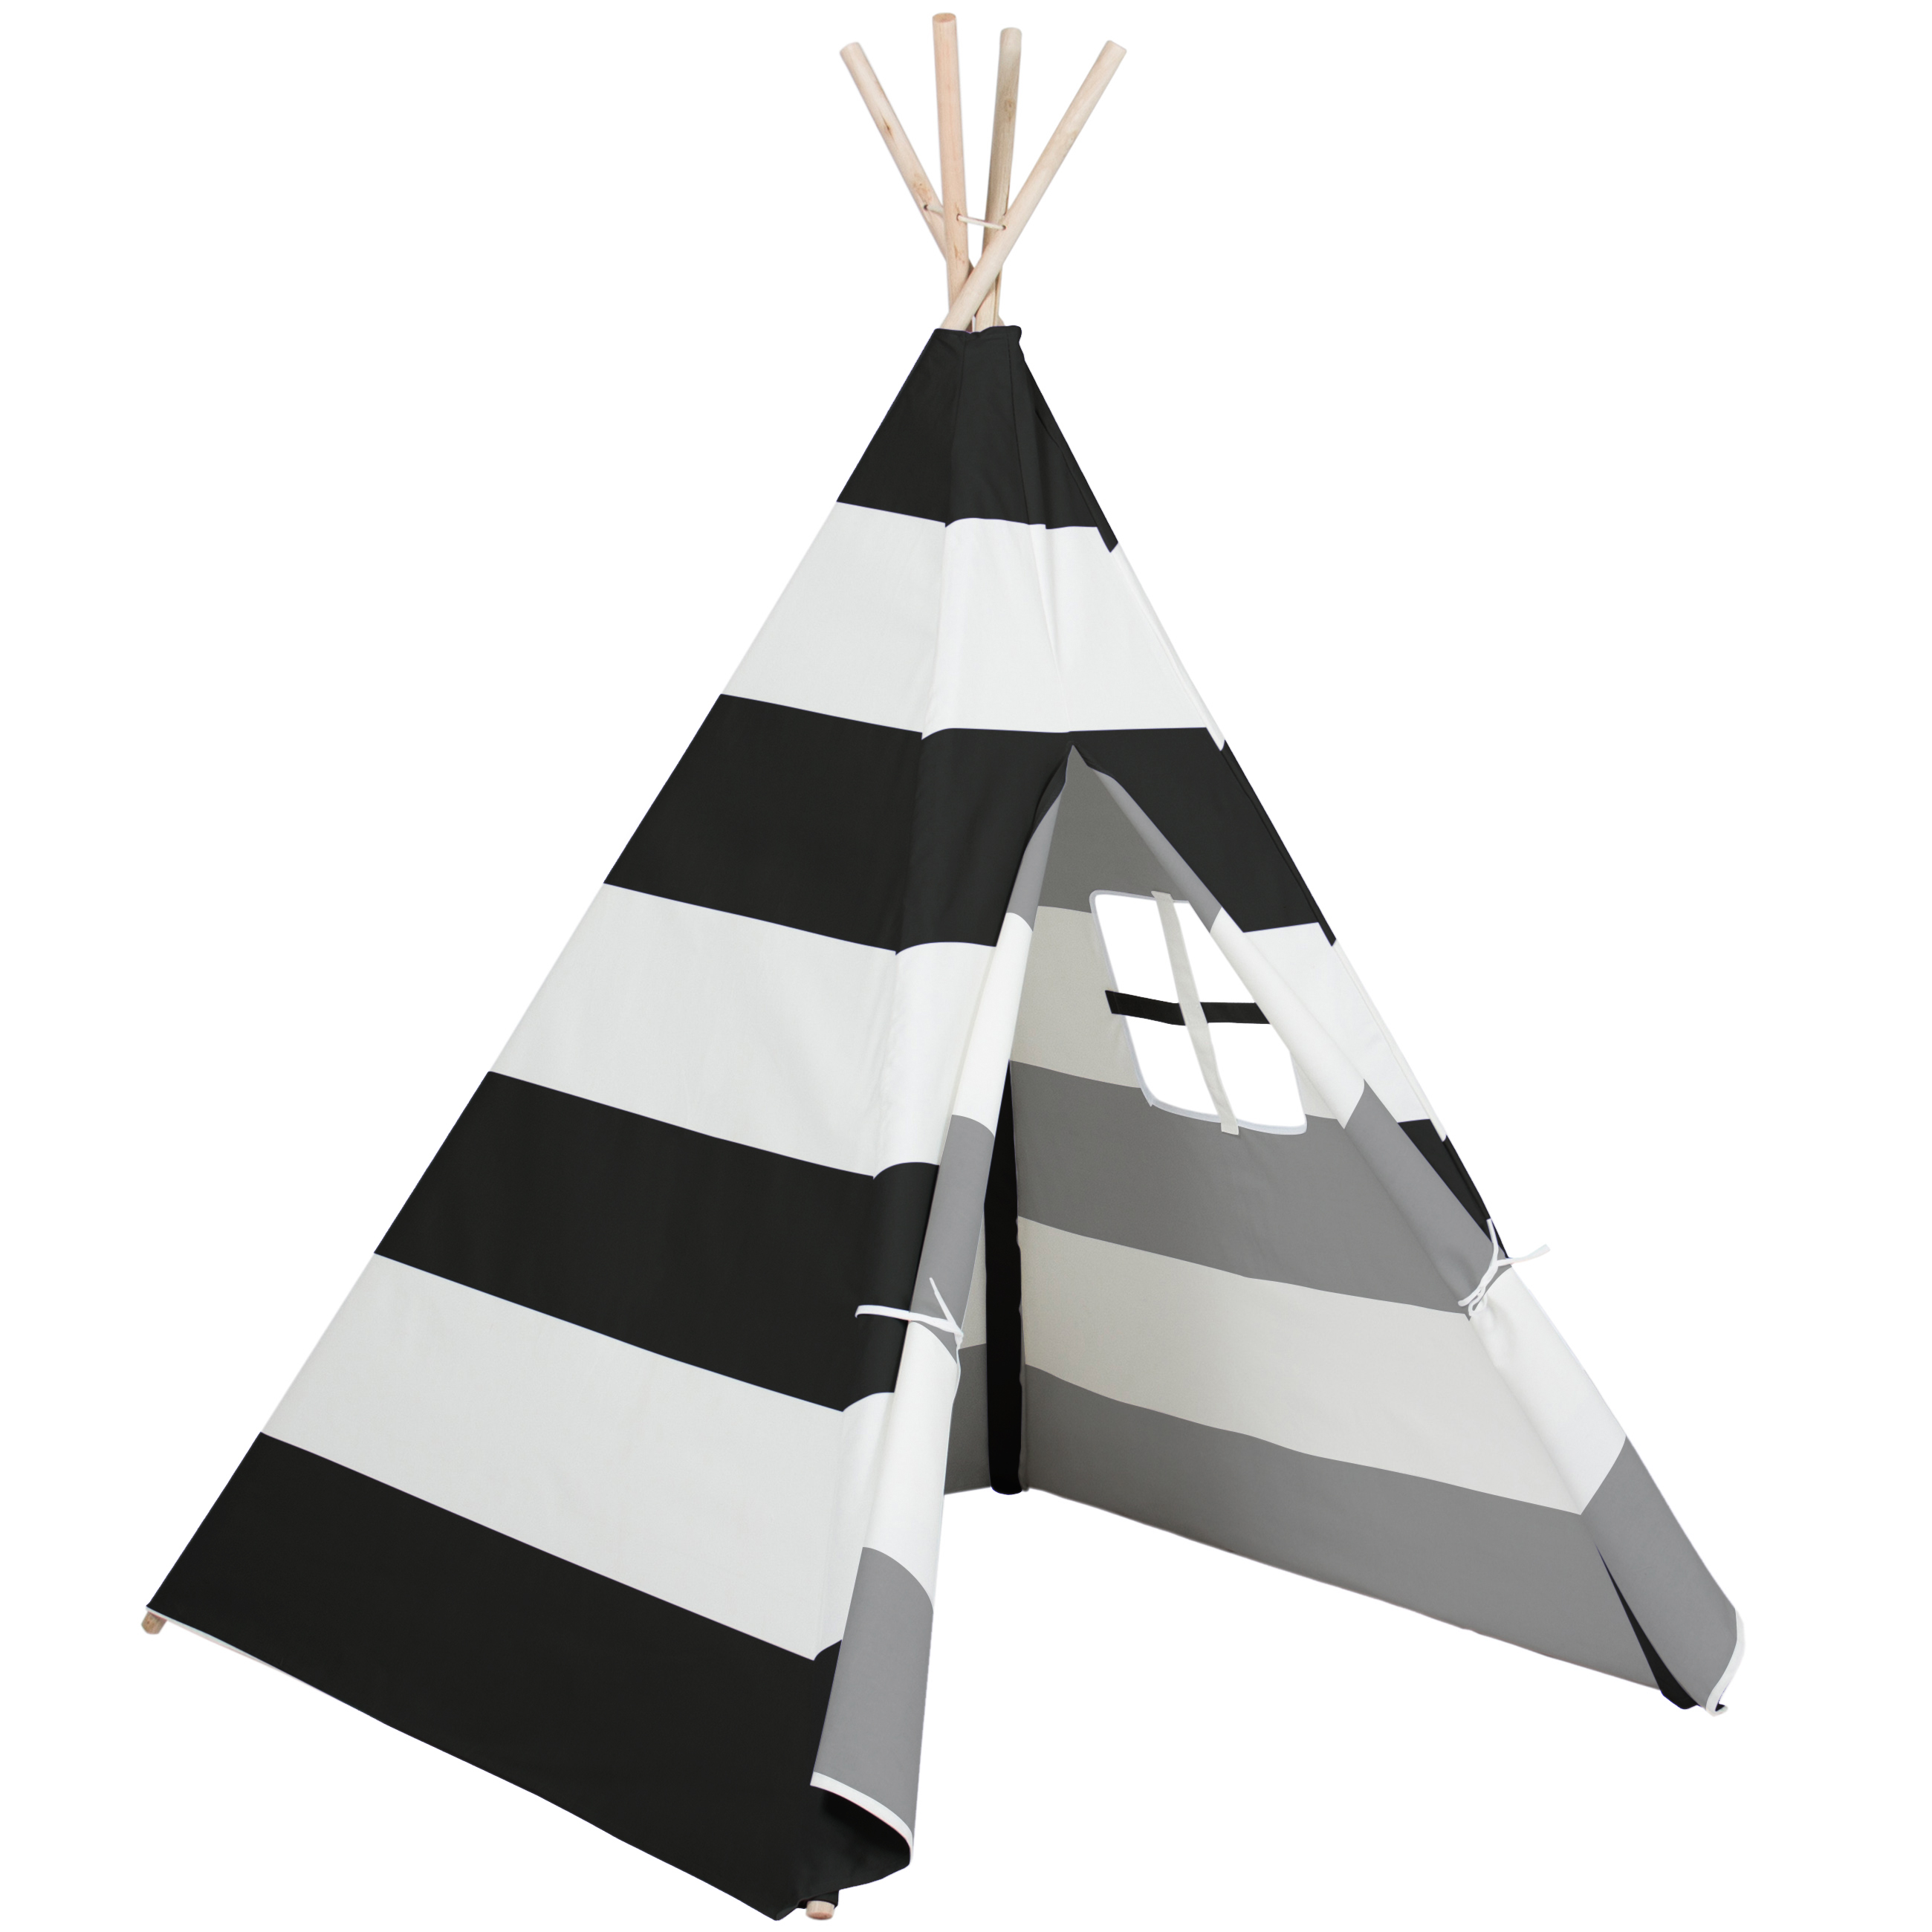 Best Choice Products 6ft Kids Stripe Cotton Canvas Indian Teepee Playhouse Sleeping Dome Play Tent w/ Carrying Bag, Mesh Window - White/Black